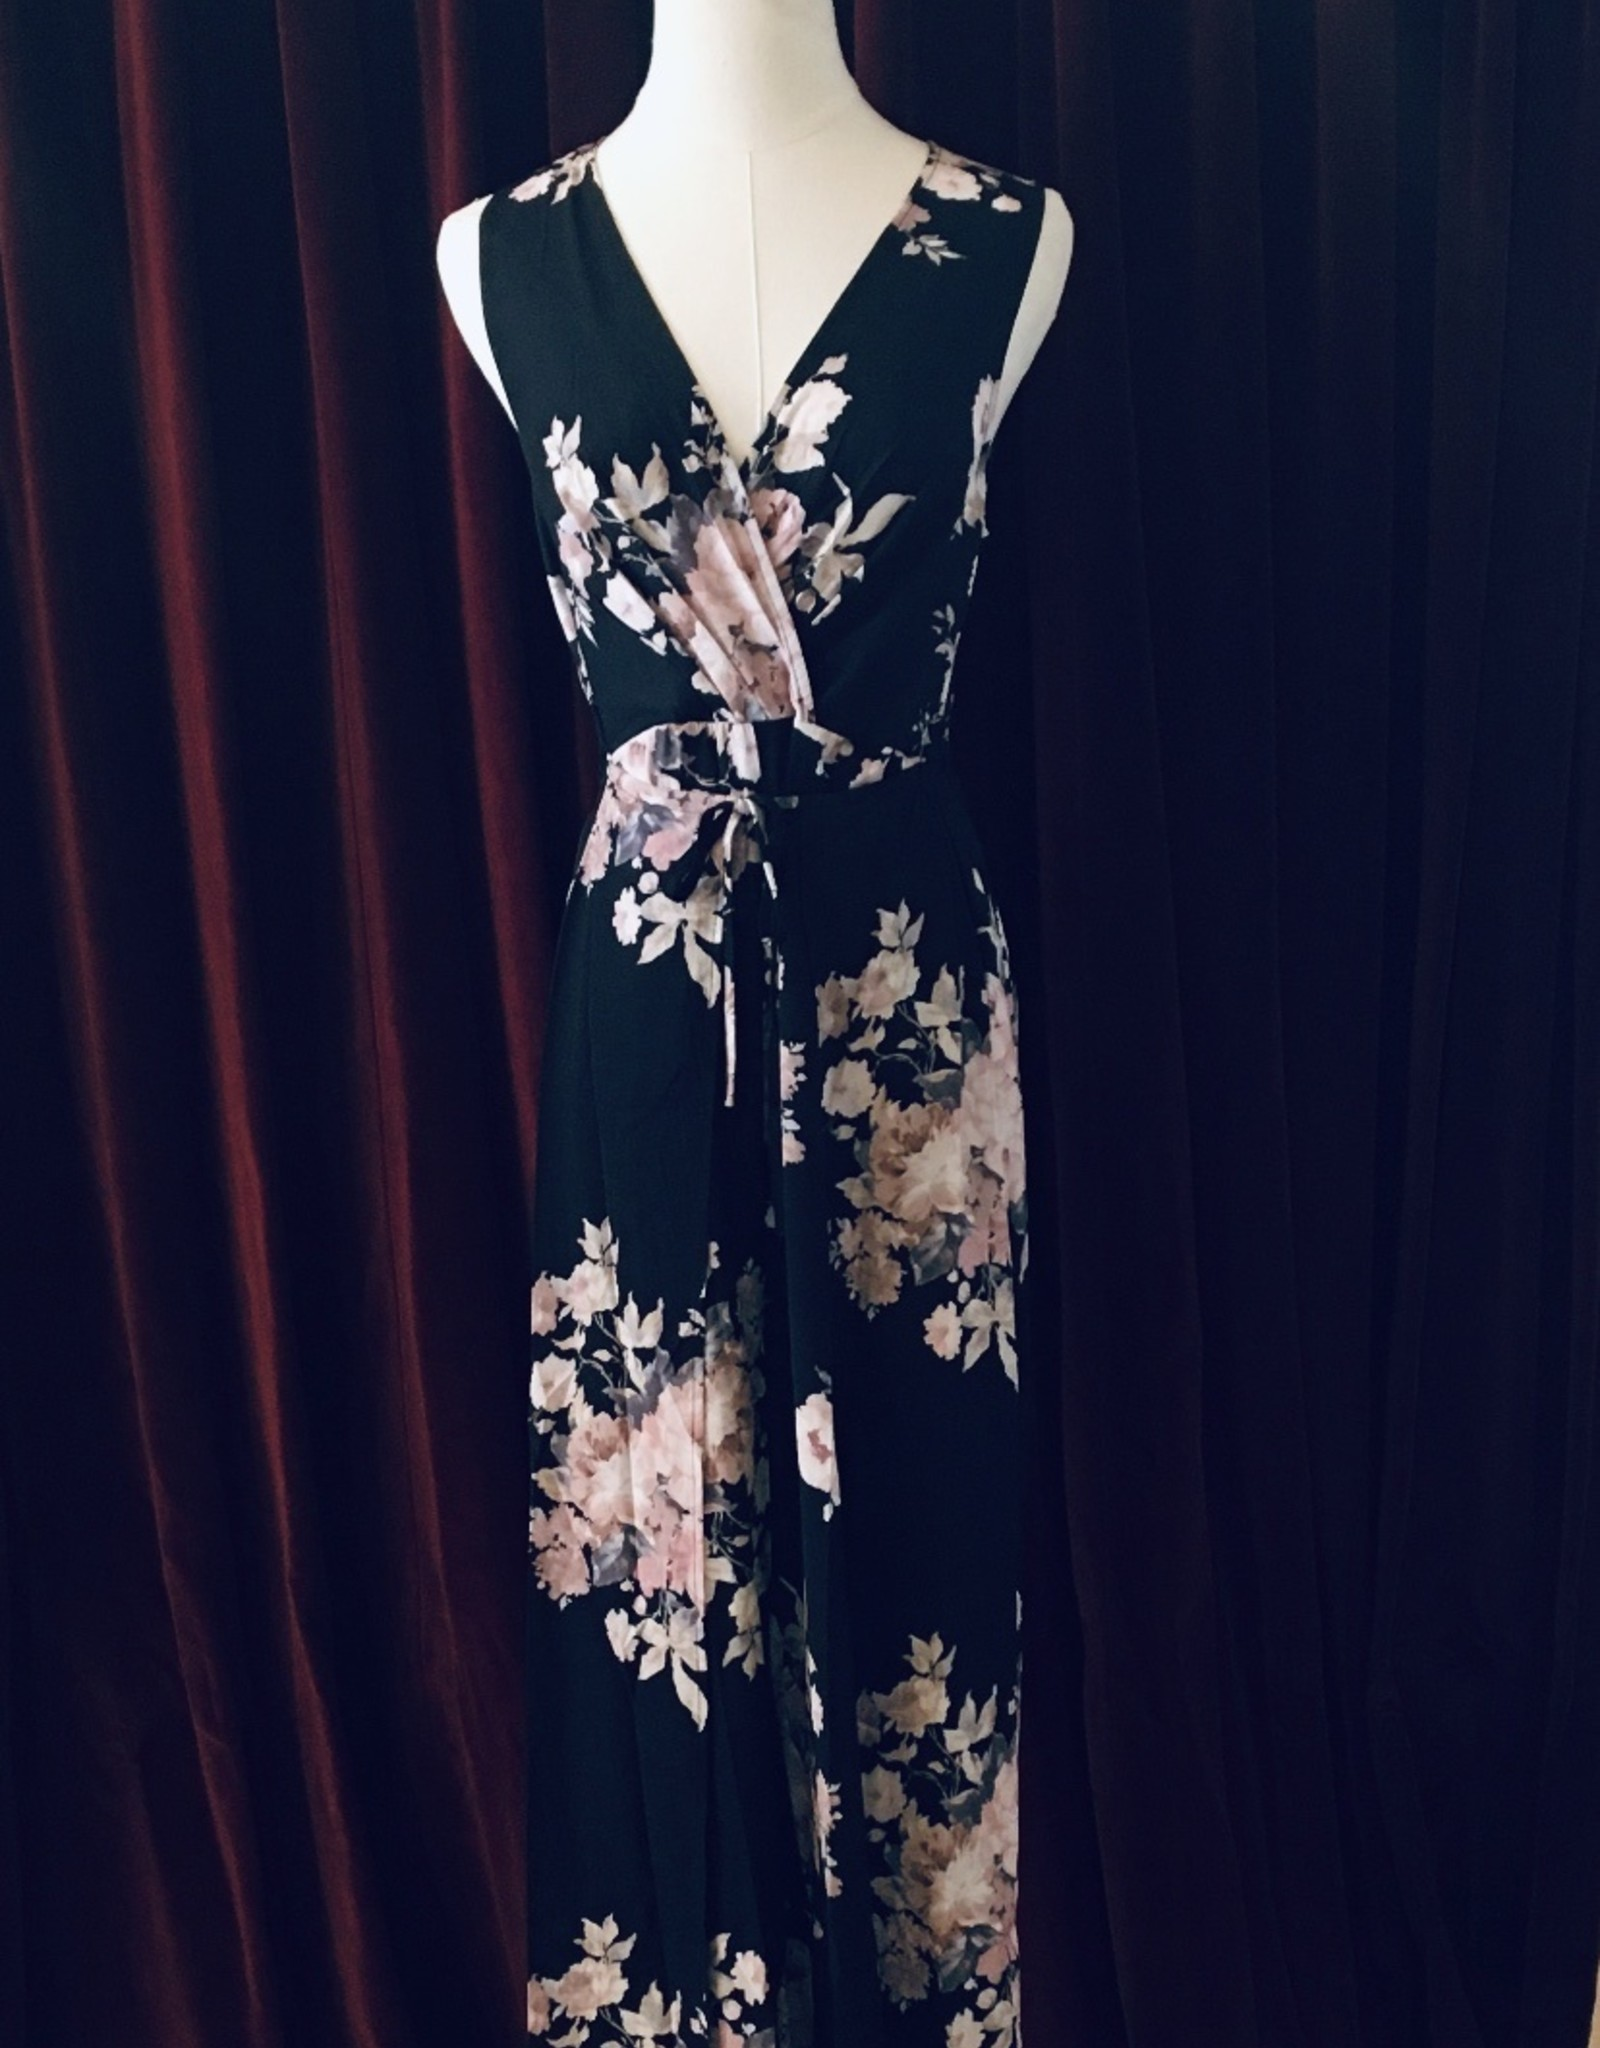 Lorraine - Pantsuit with crossover front,